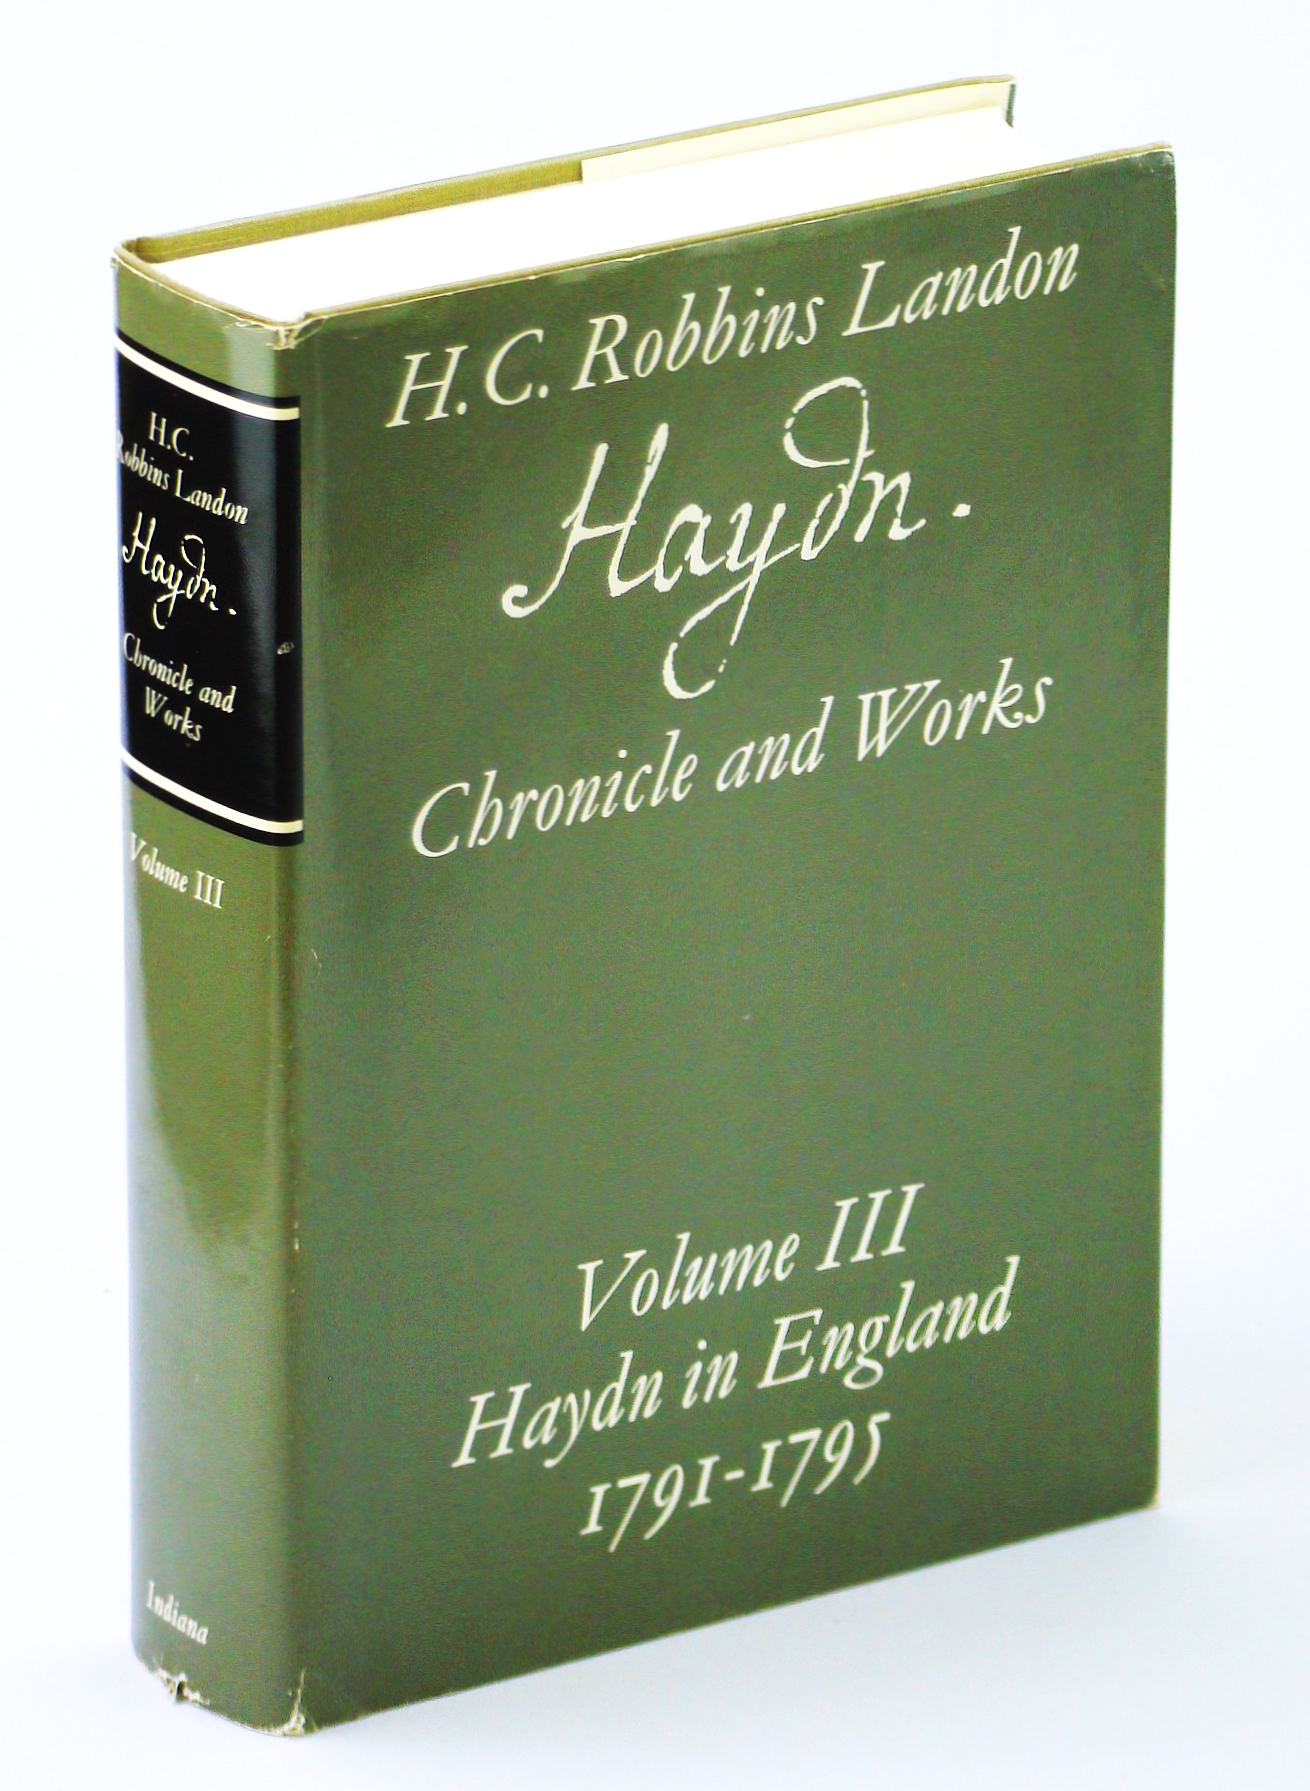 Image for Haydn in England, 1791-1795 (Haydn: Chronicles and Works, Volume 3)